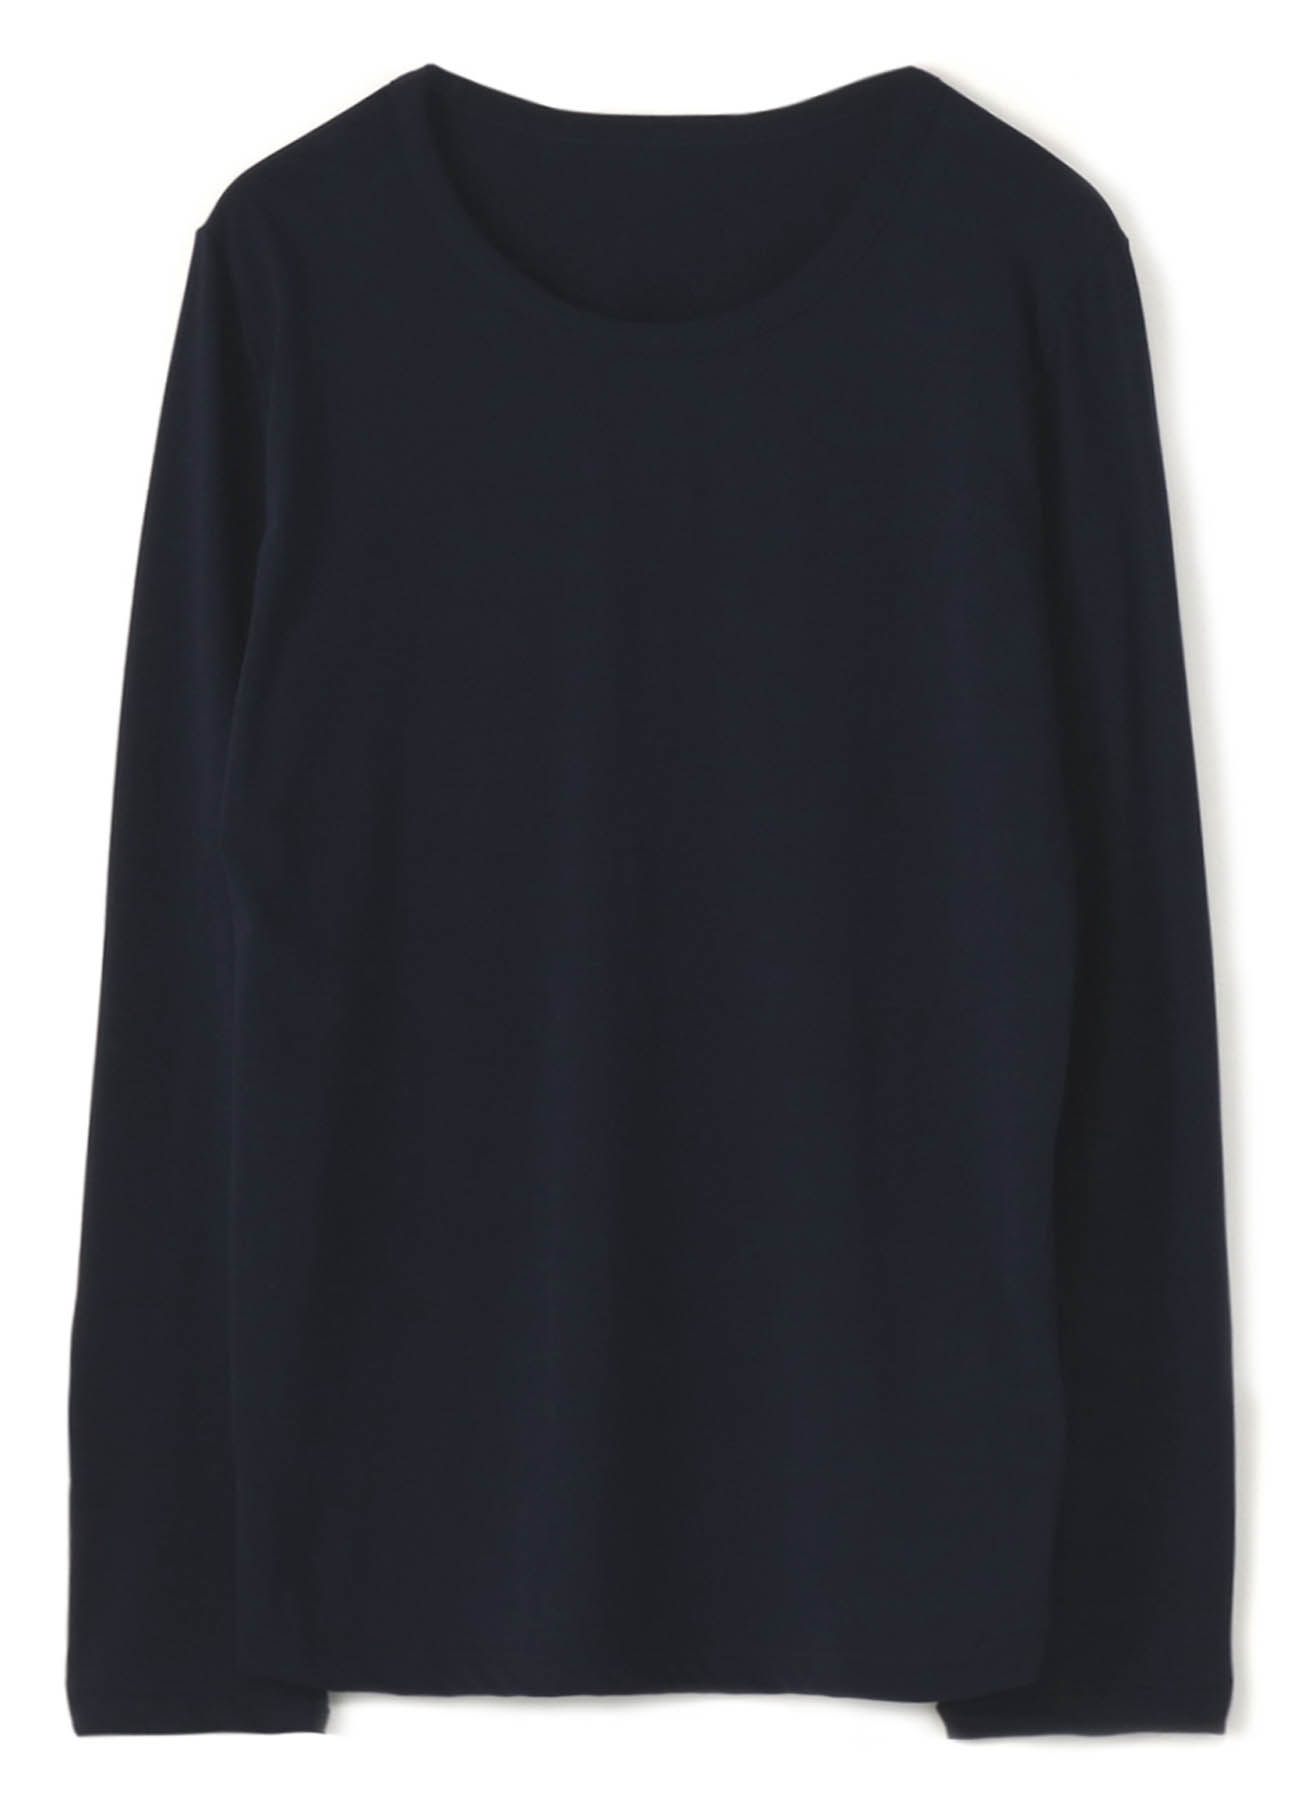 SOFT COTTON ROUND-NECKED COLLAR LONG SLEEVE T-SHIRT